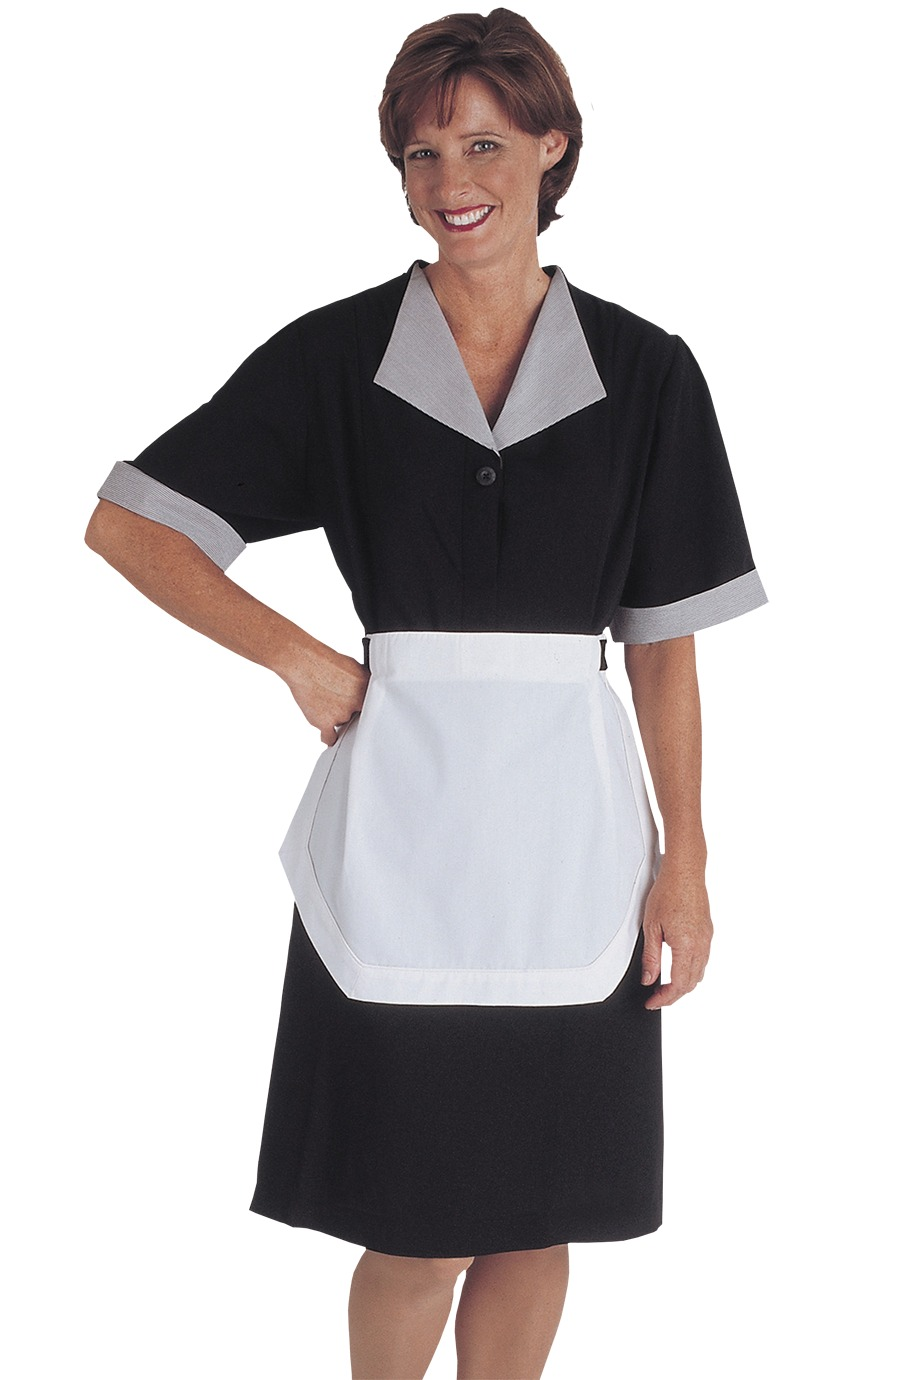 Edwards Garment 9896 - Women's Spun Polyester Housekeeping ...